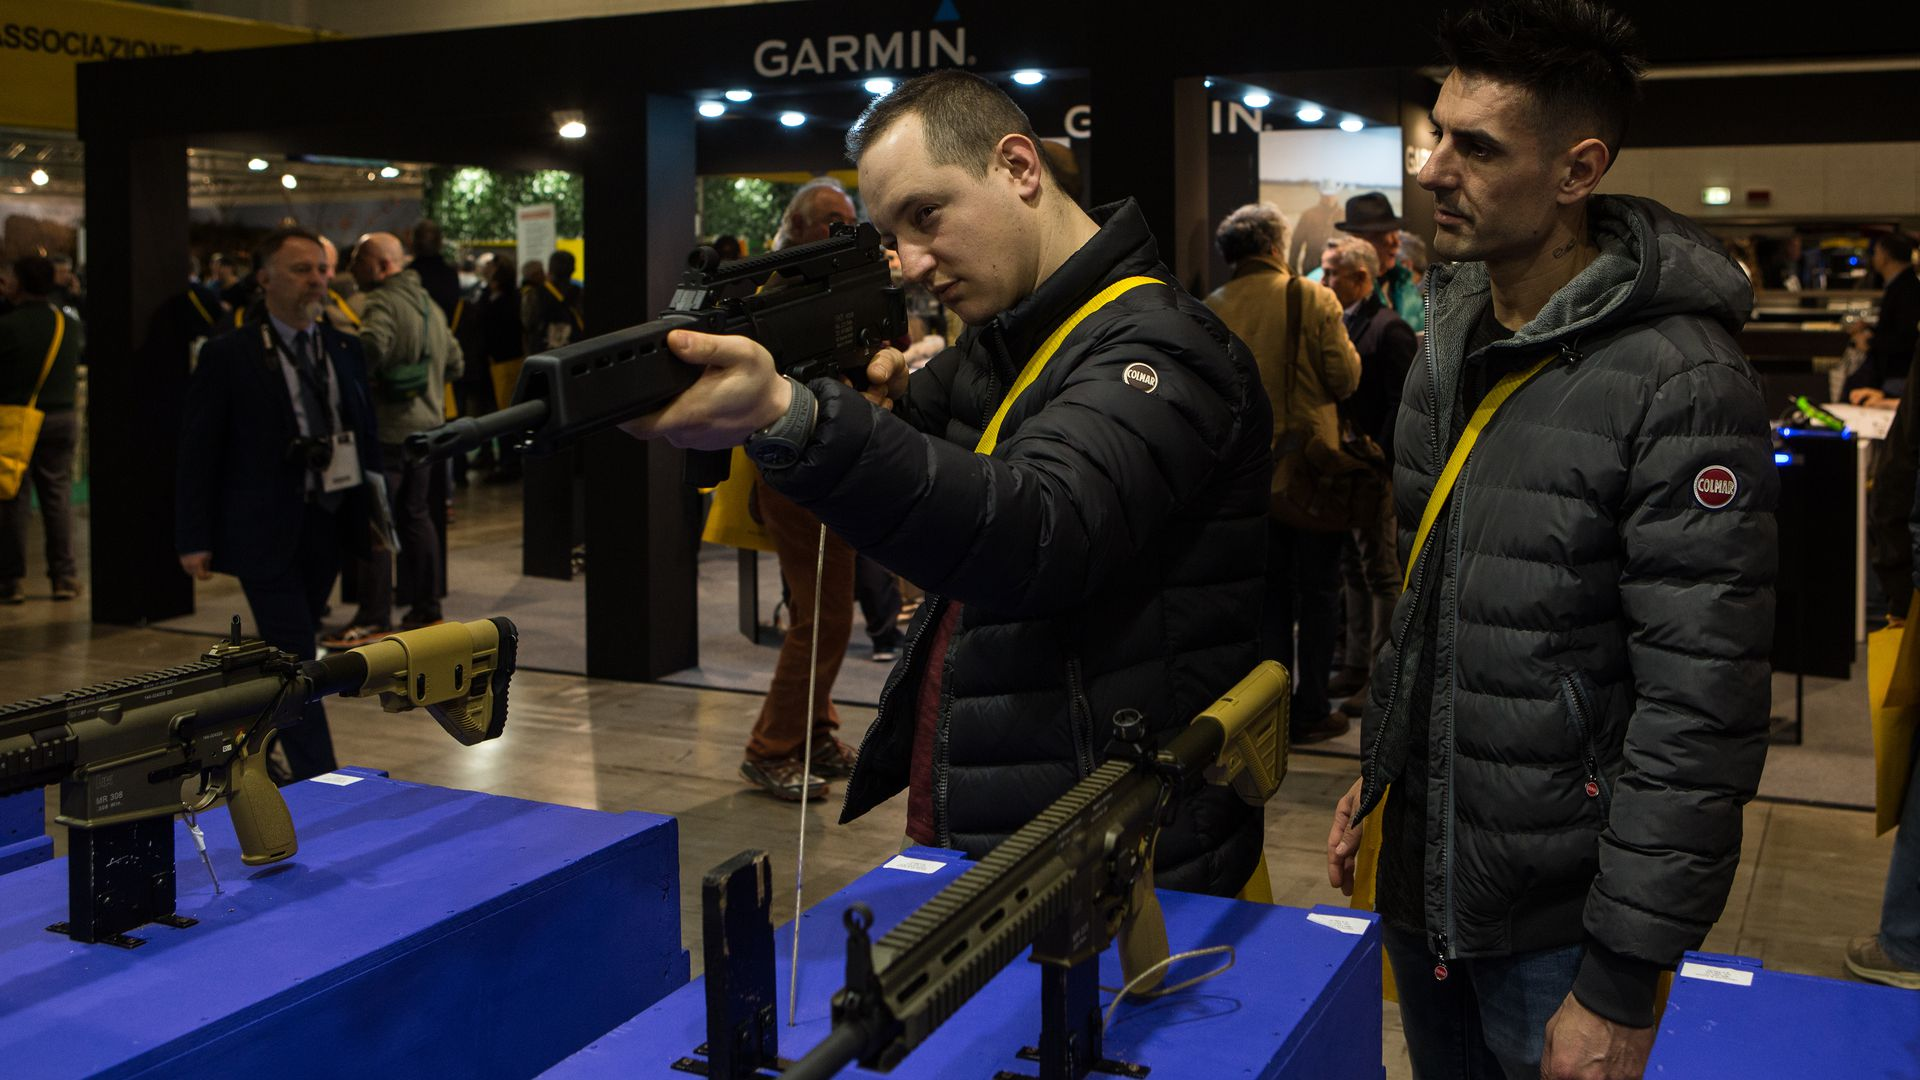 two men trying out a gun at a gun show